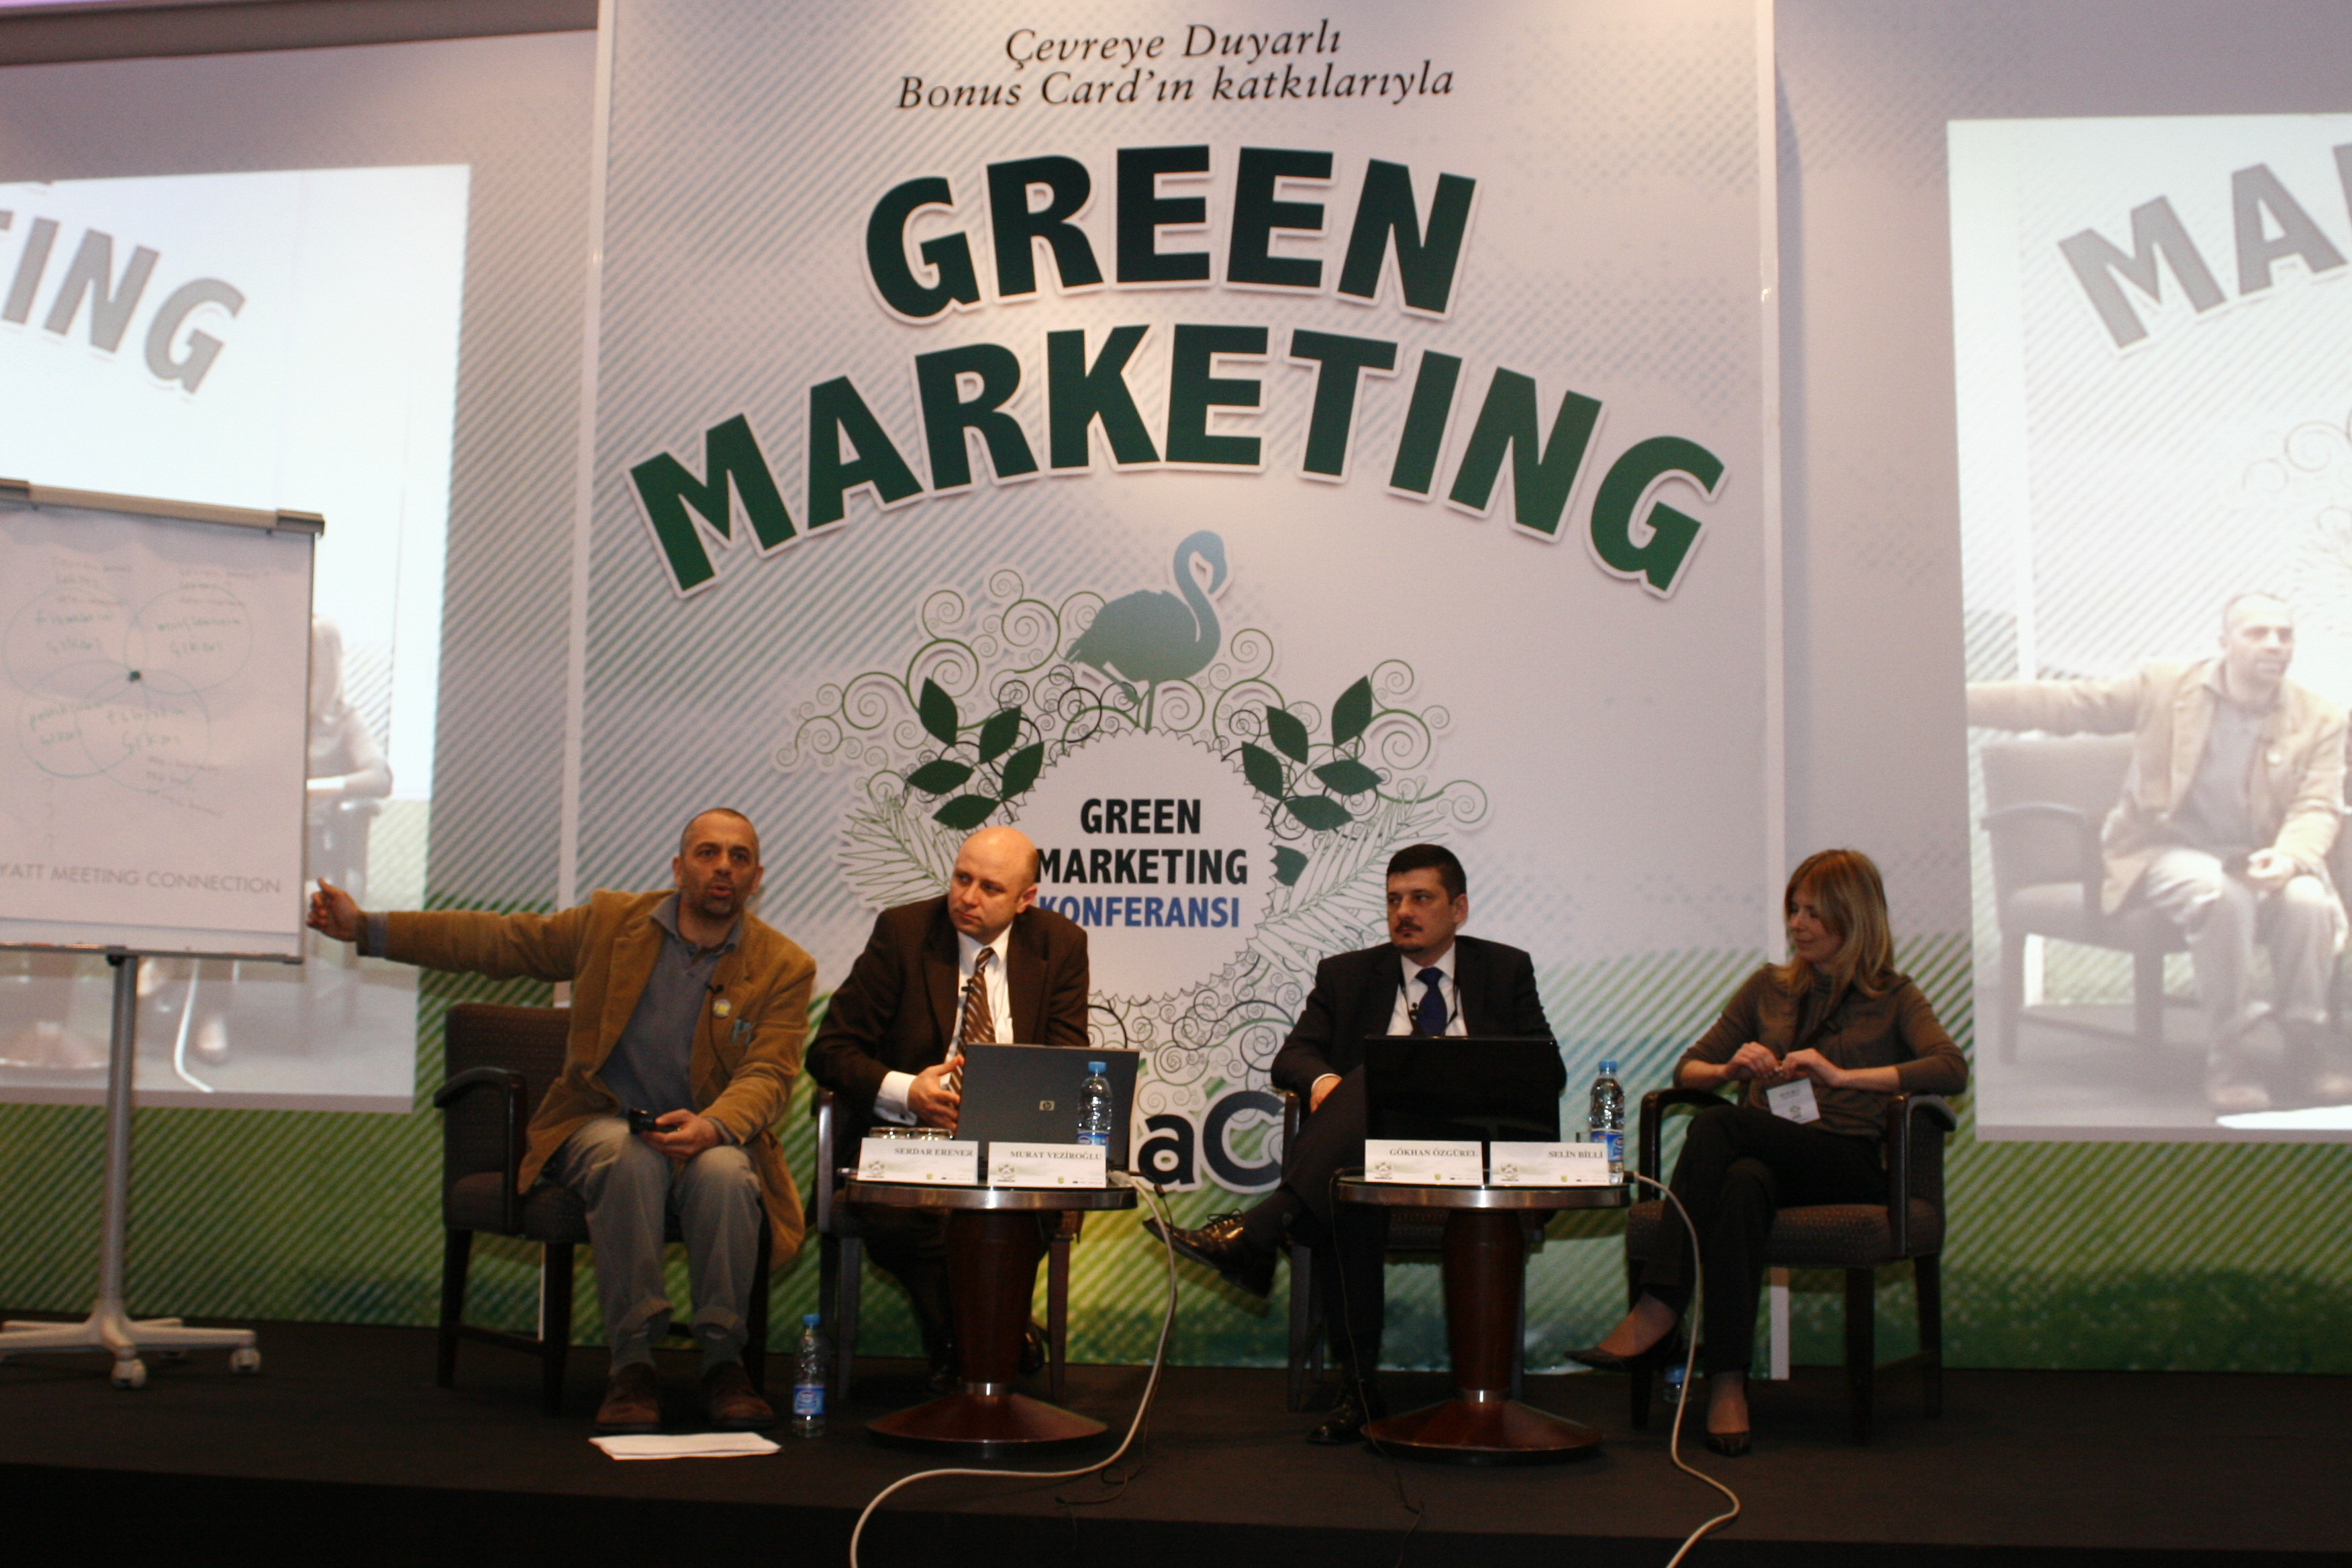 GREEN MARKETING KONFERANSI 2008